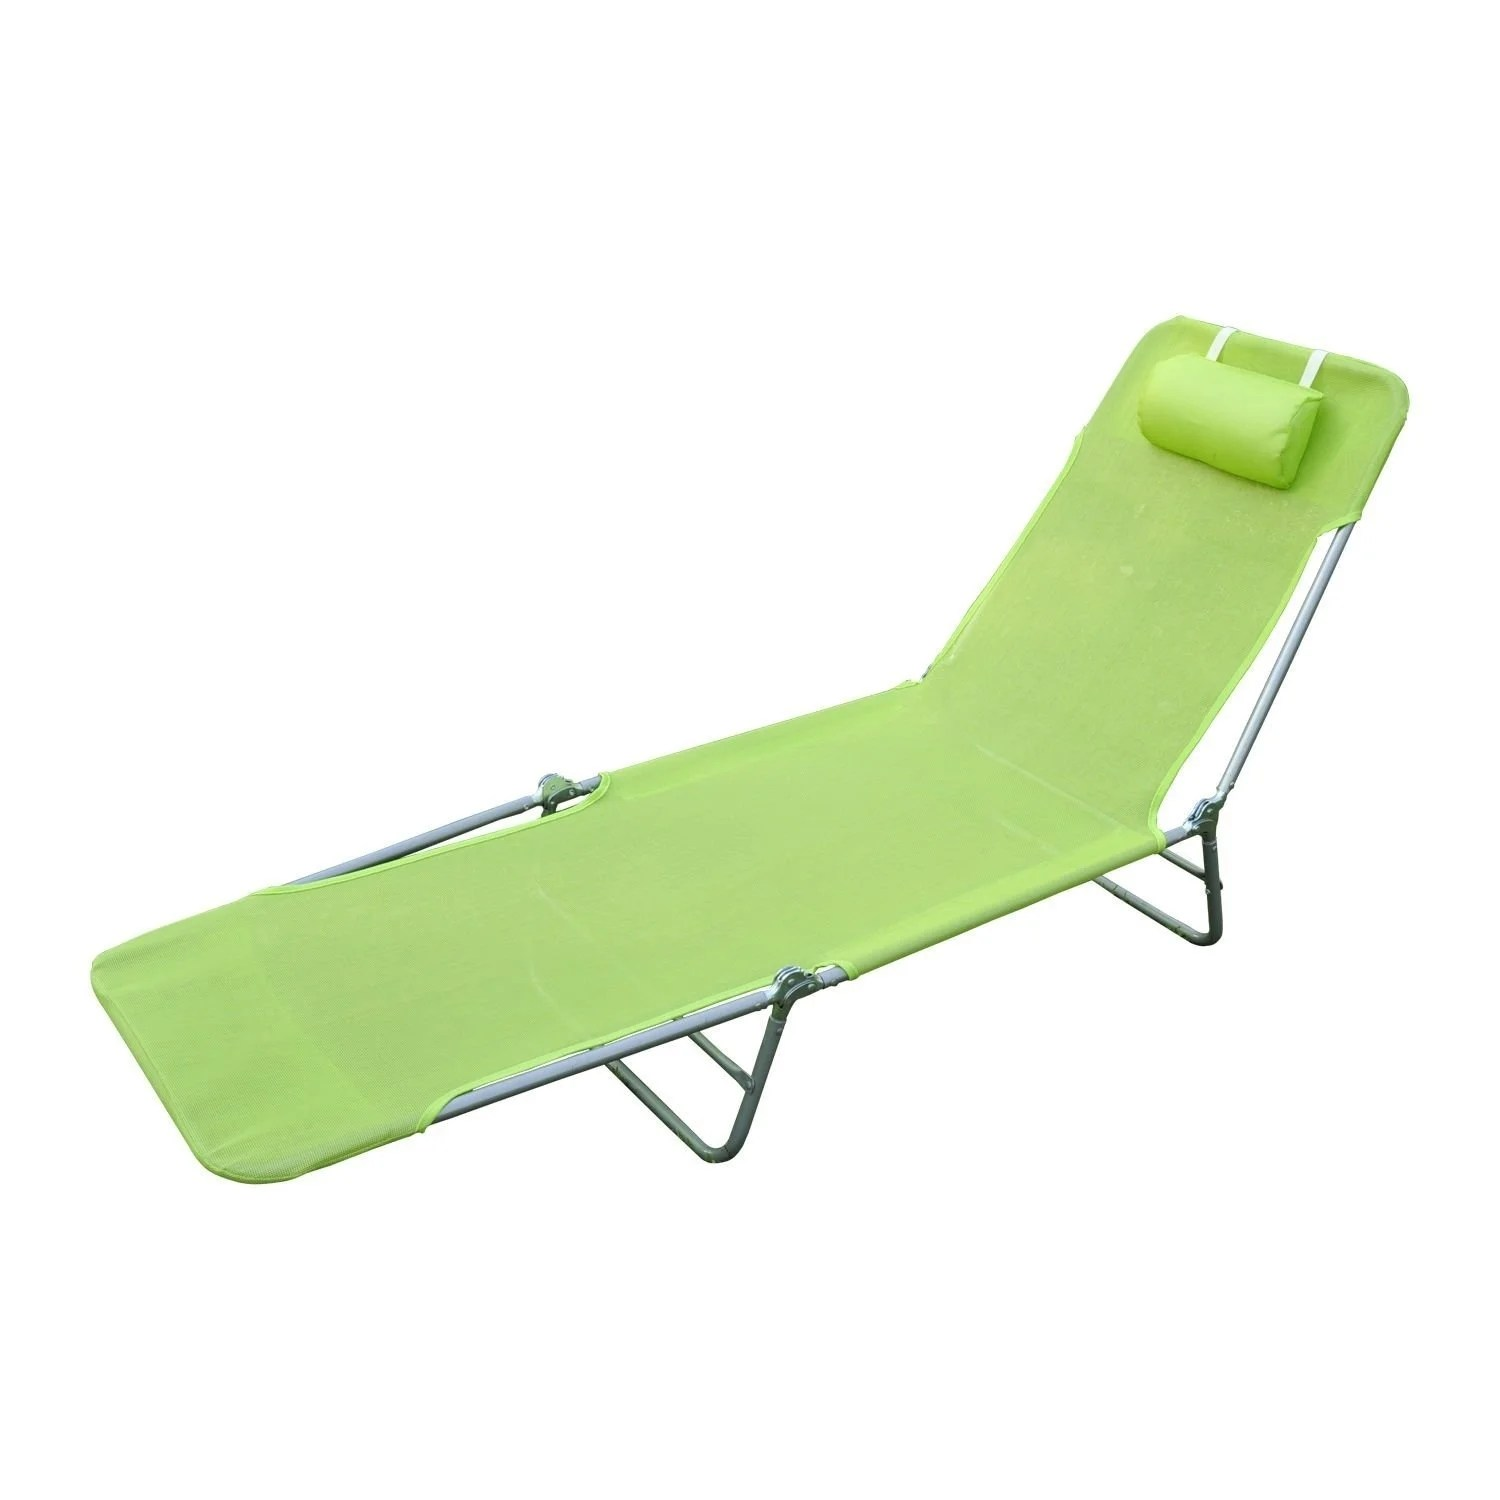 Folding Chaise Lounge Chairs Outdoor Outsunny Aluminum Lightweight Outdoor Patio Folding Chaise Lounge Chair Green